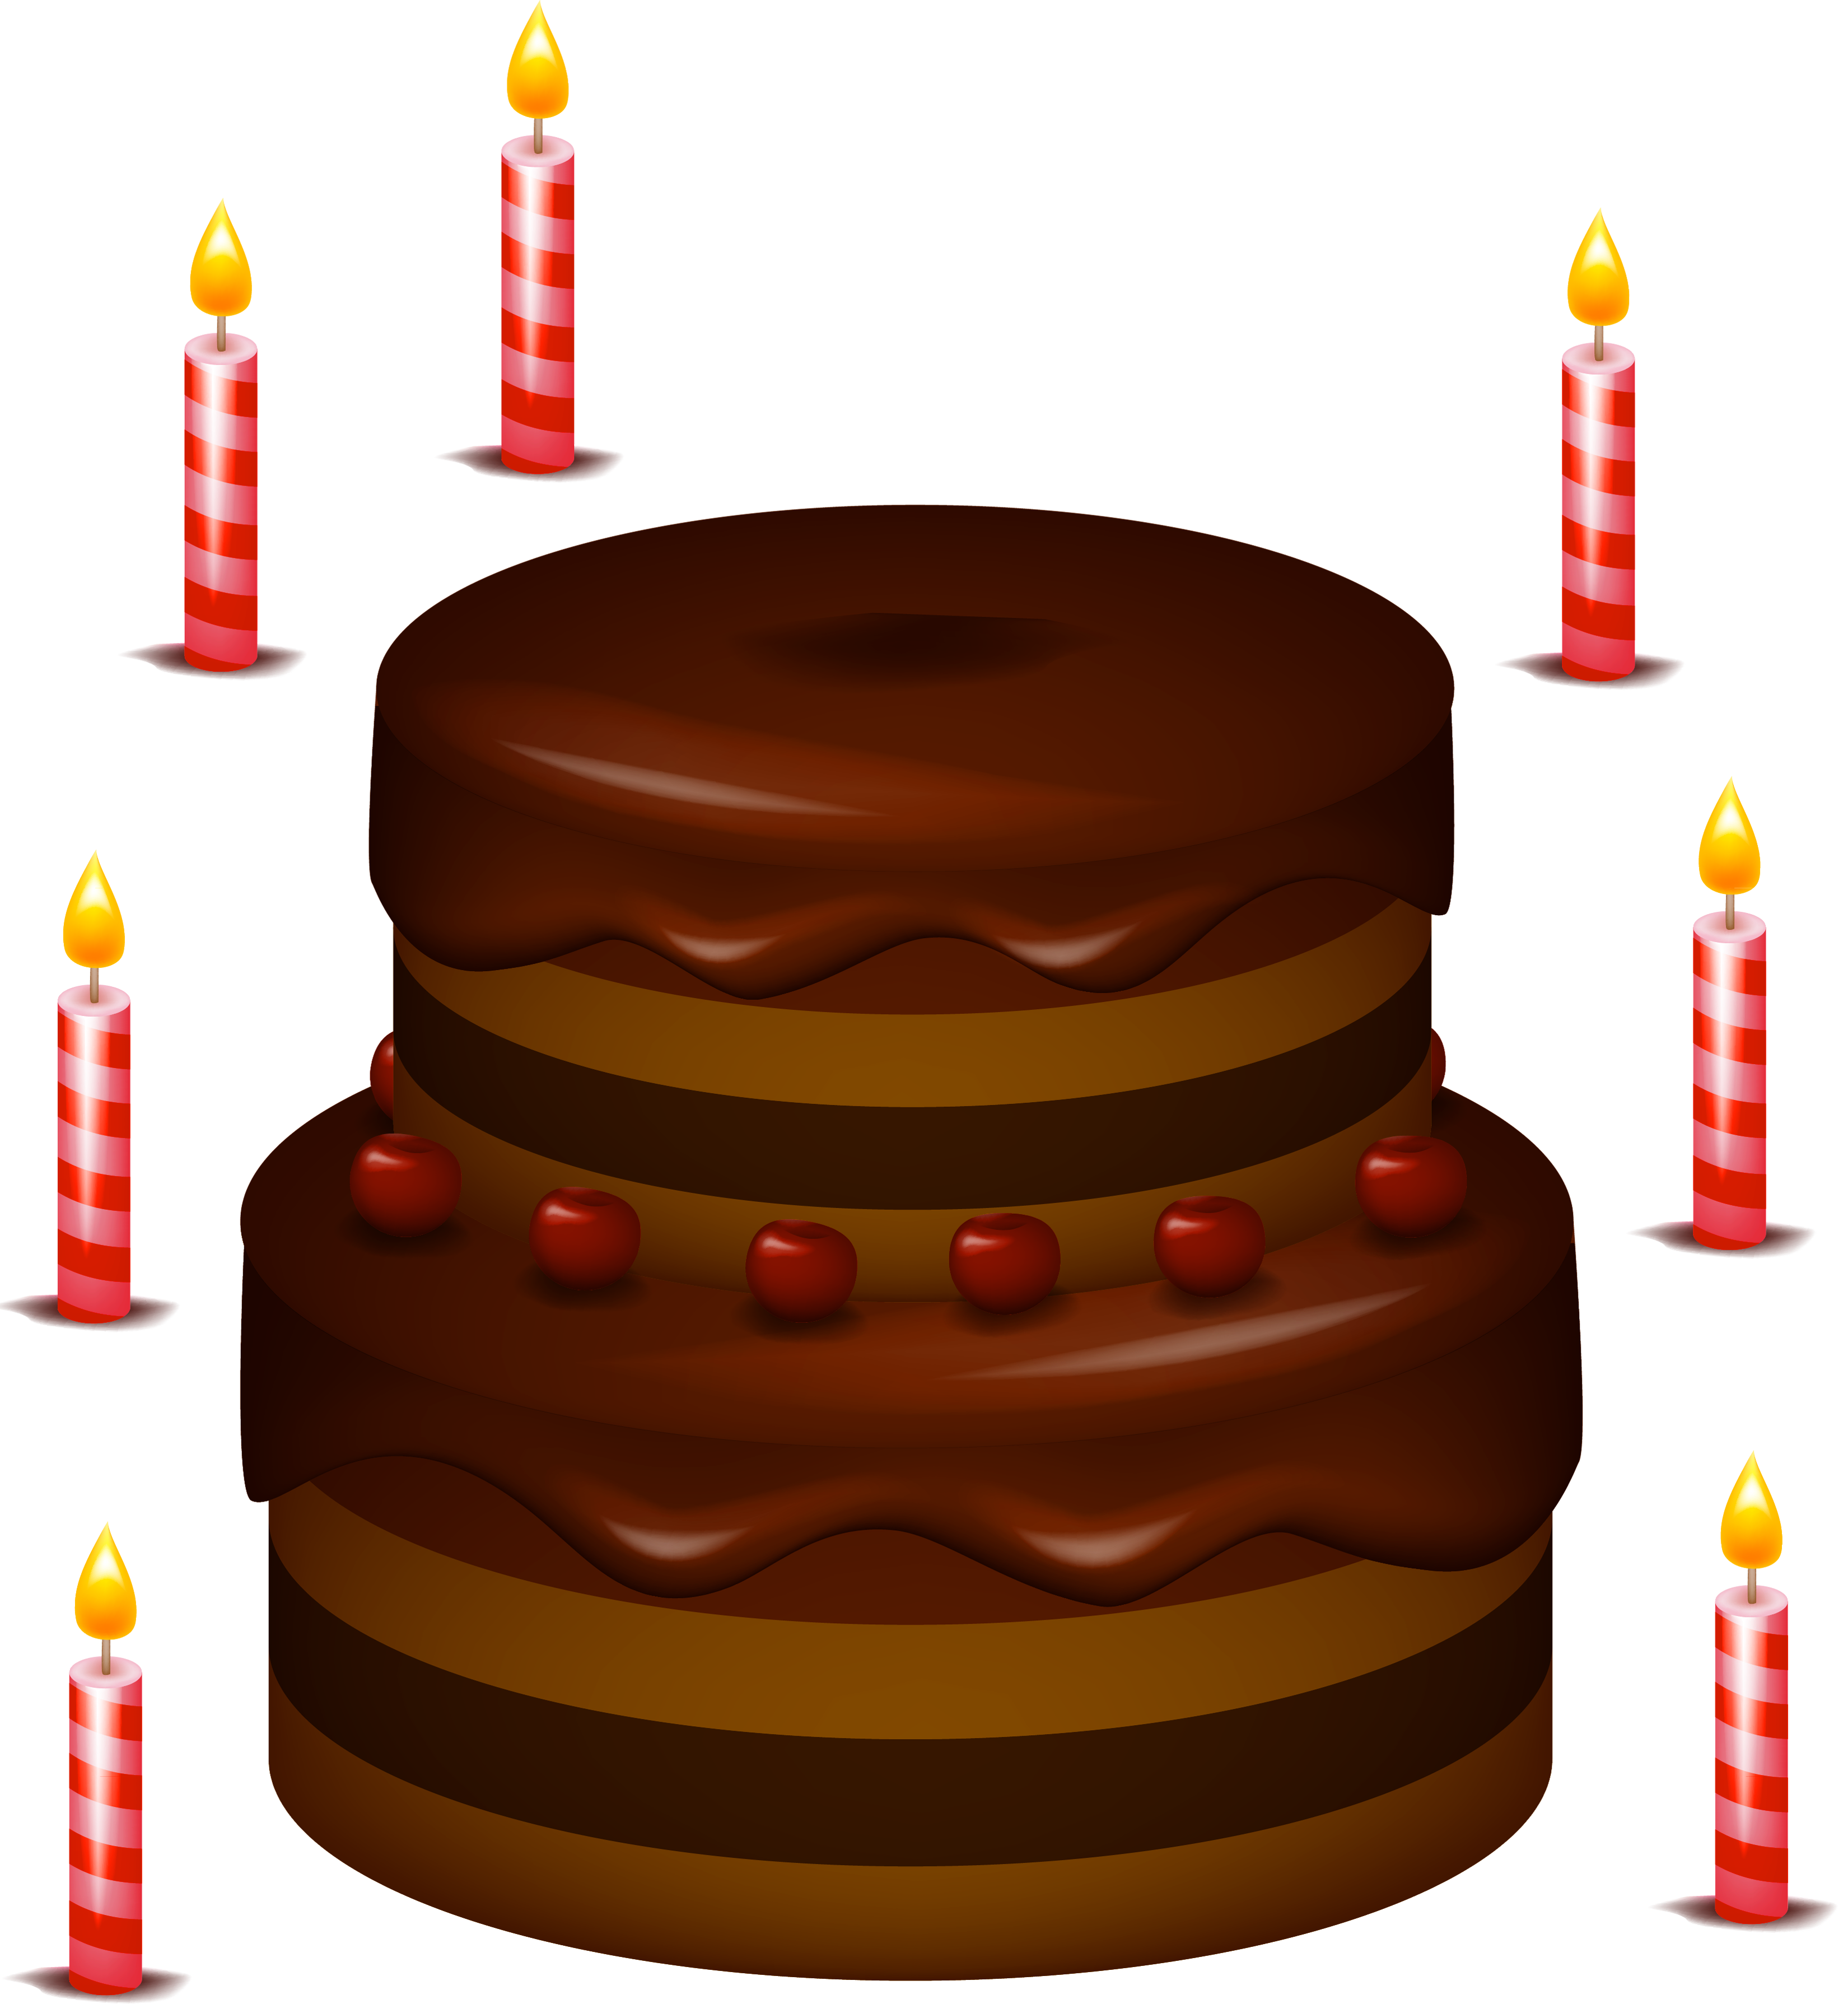 Cake With Candles Png